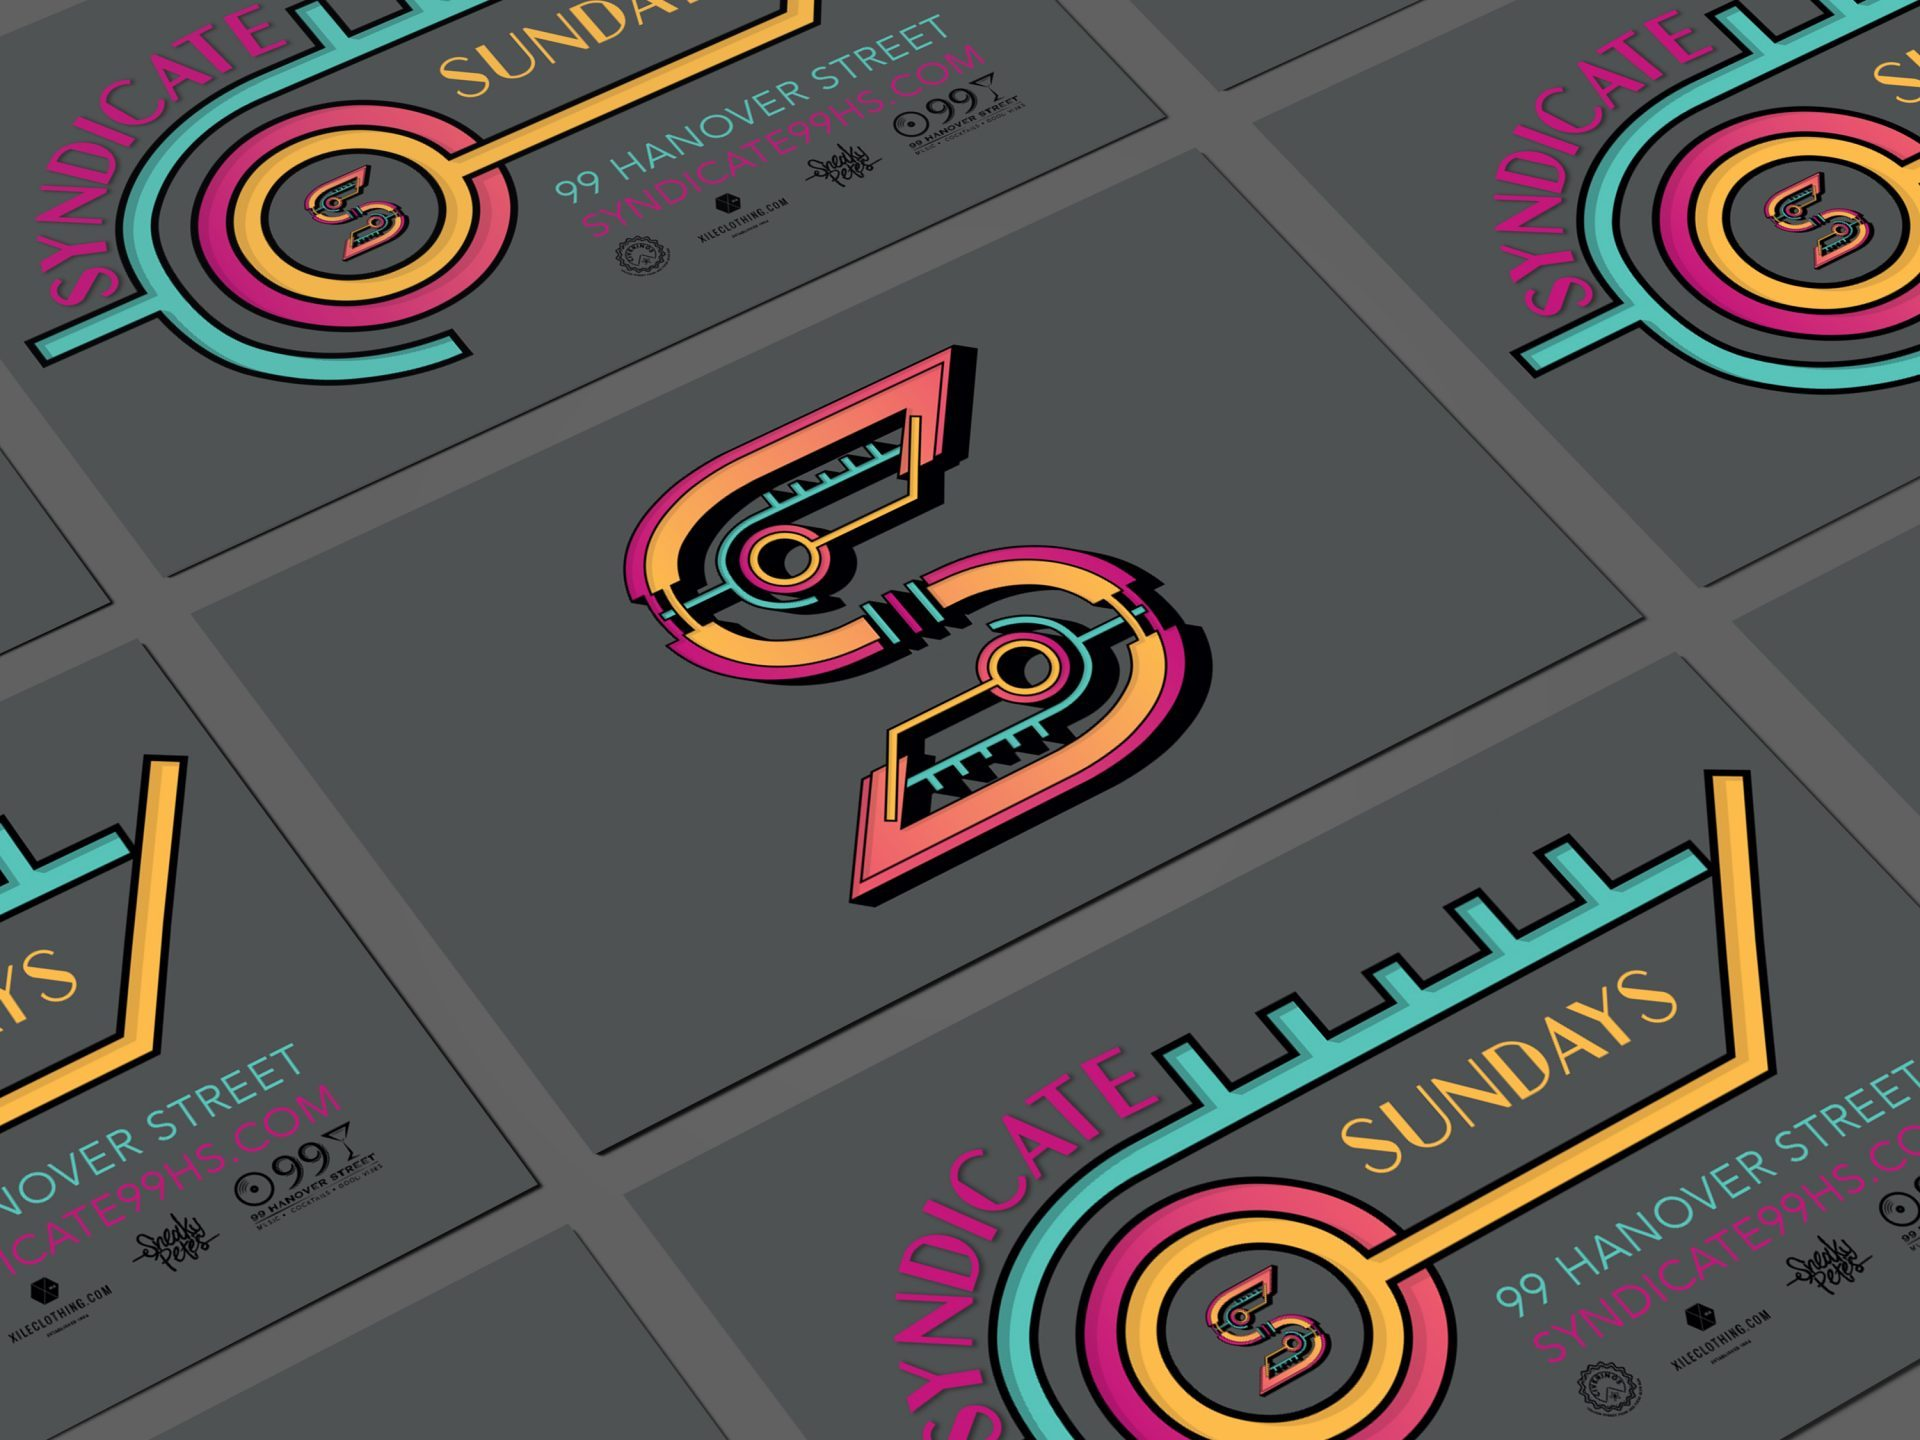 Syndicate membership cards designed by Dephined